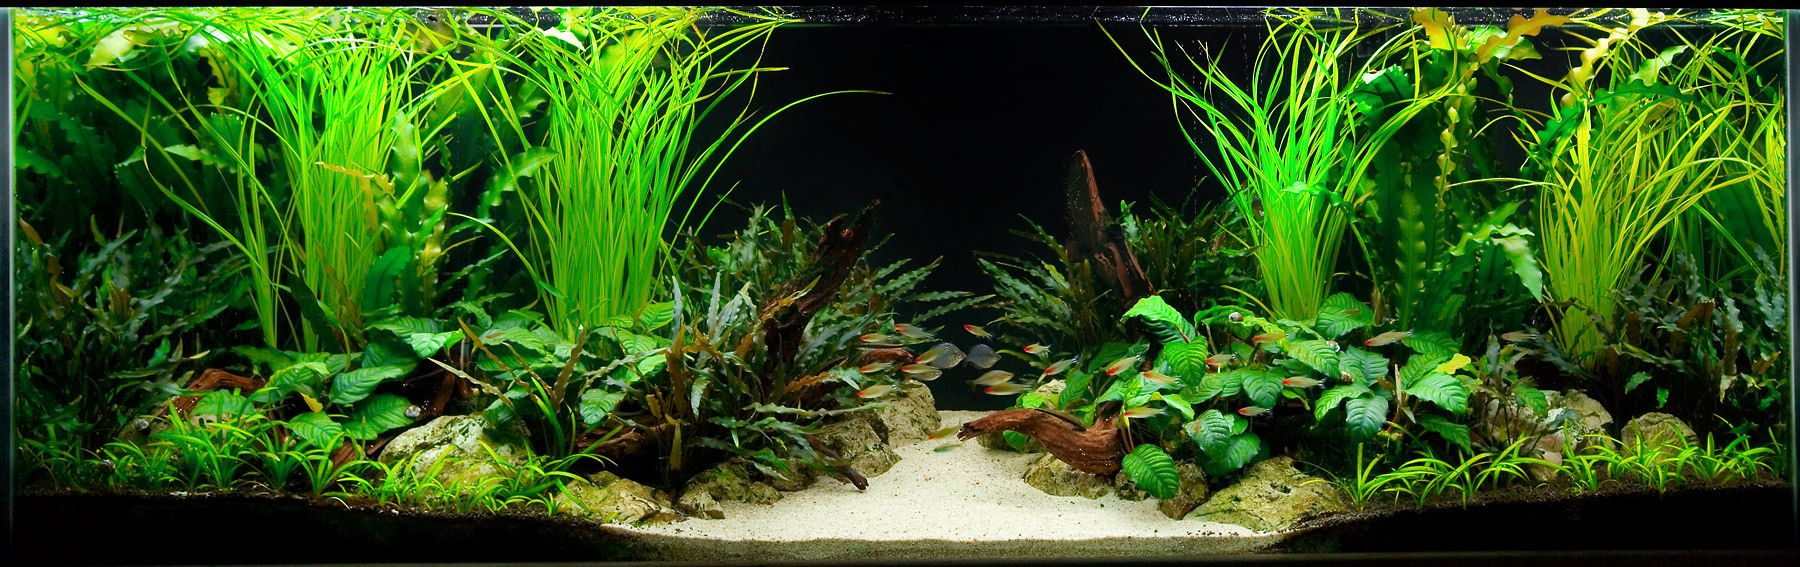 Aquarium design group a two sided live planted aquarium for Plante aquarium